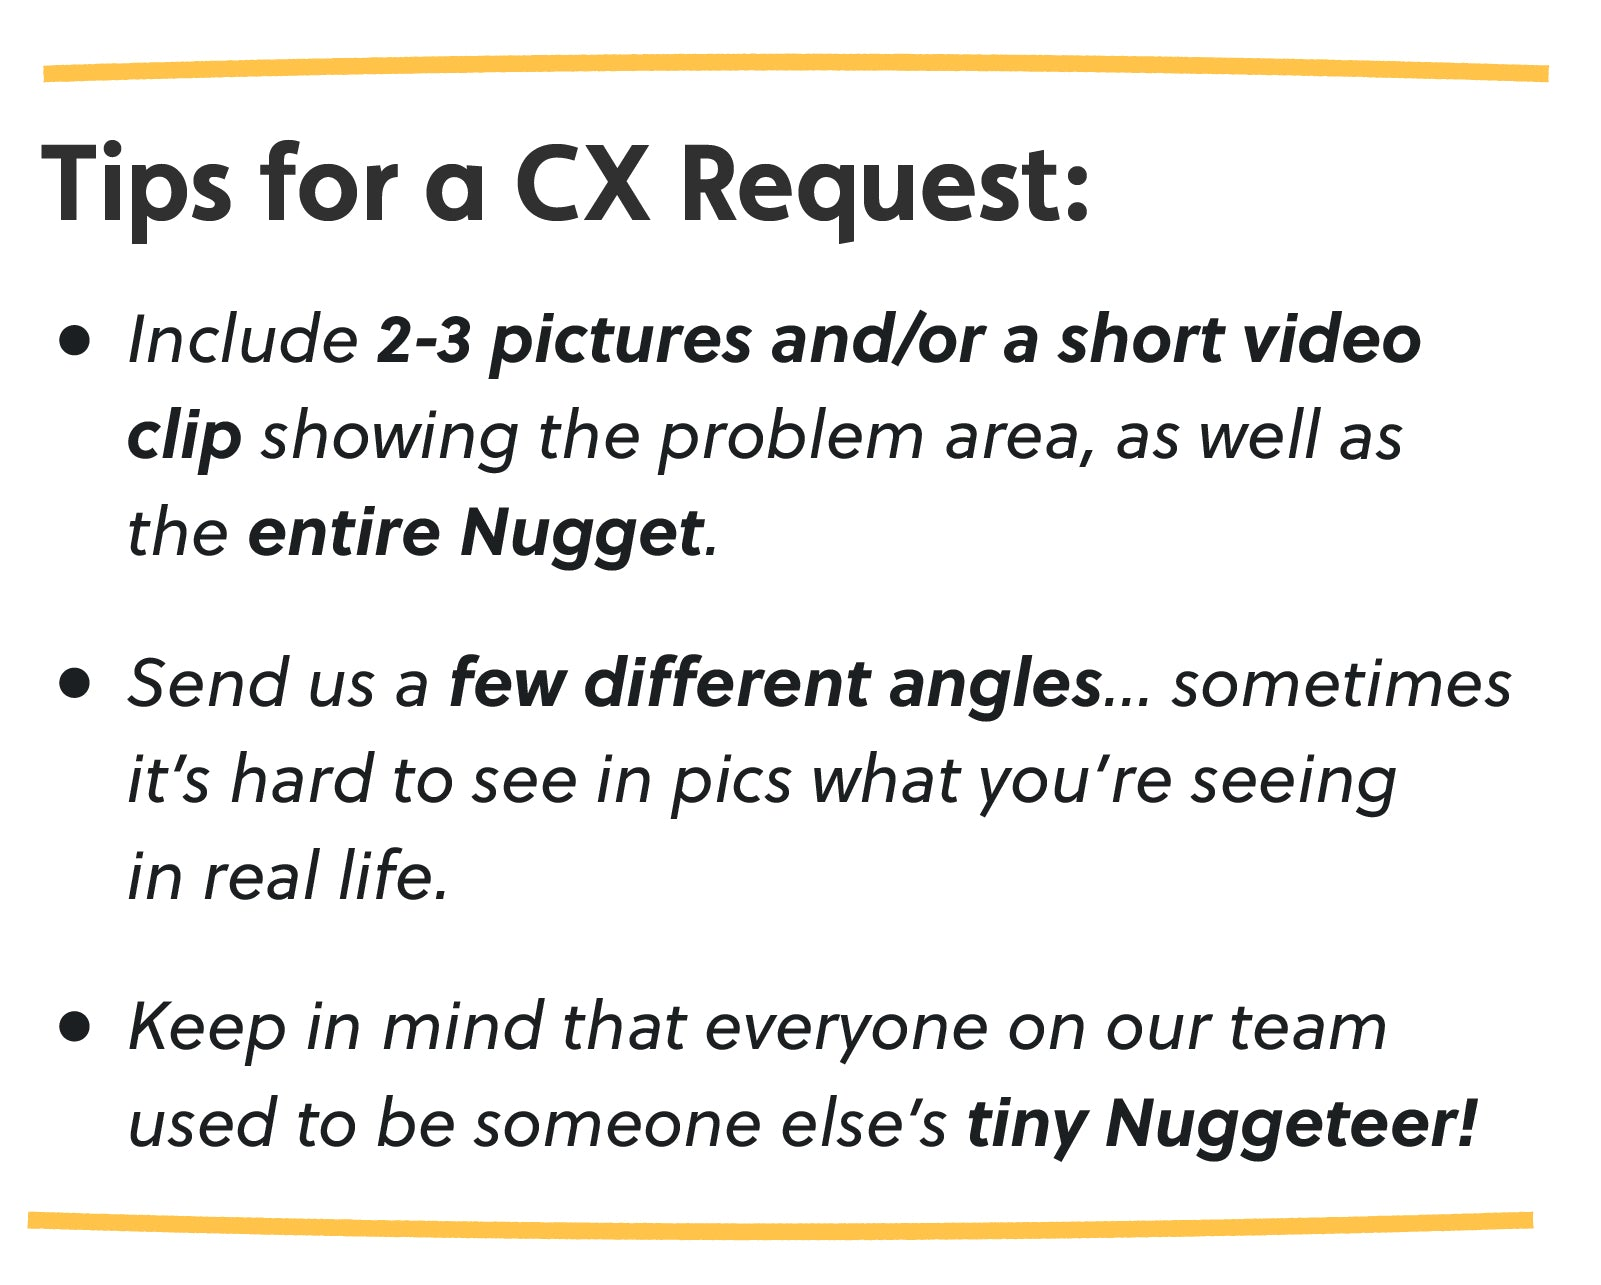 Tips for a CX Request: Include 2-3 pictures and/or a short video clip showing the problem area, as well as the entire Nugget. Send us a few different angles… sometimes it's hard to see in pics what you're seeing in real life. Keep in mind that everyone on our team used to be someone else's tiny Nuggeteer!